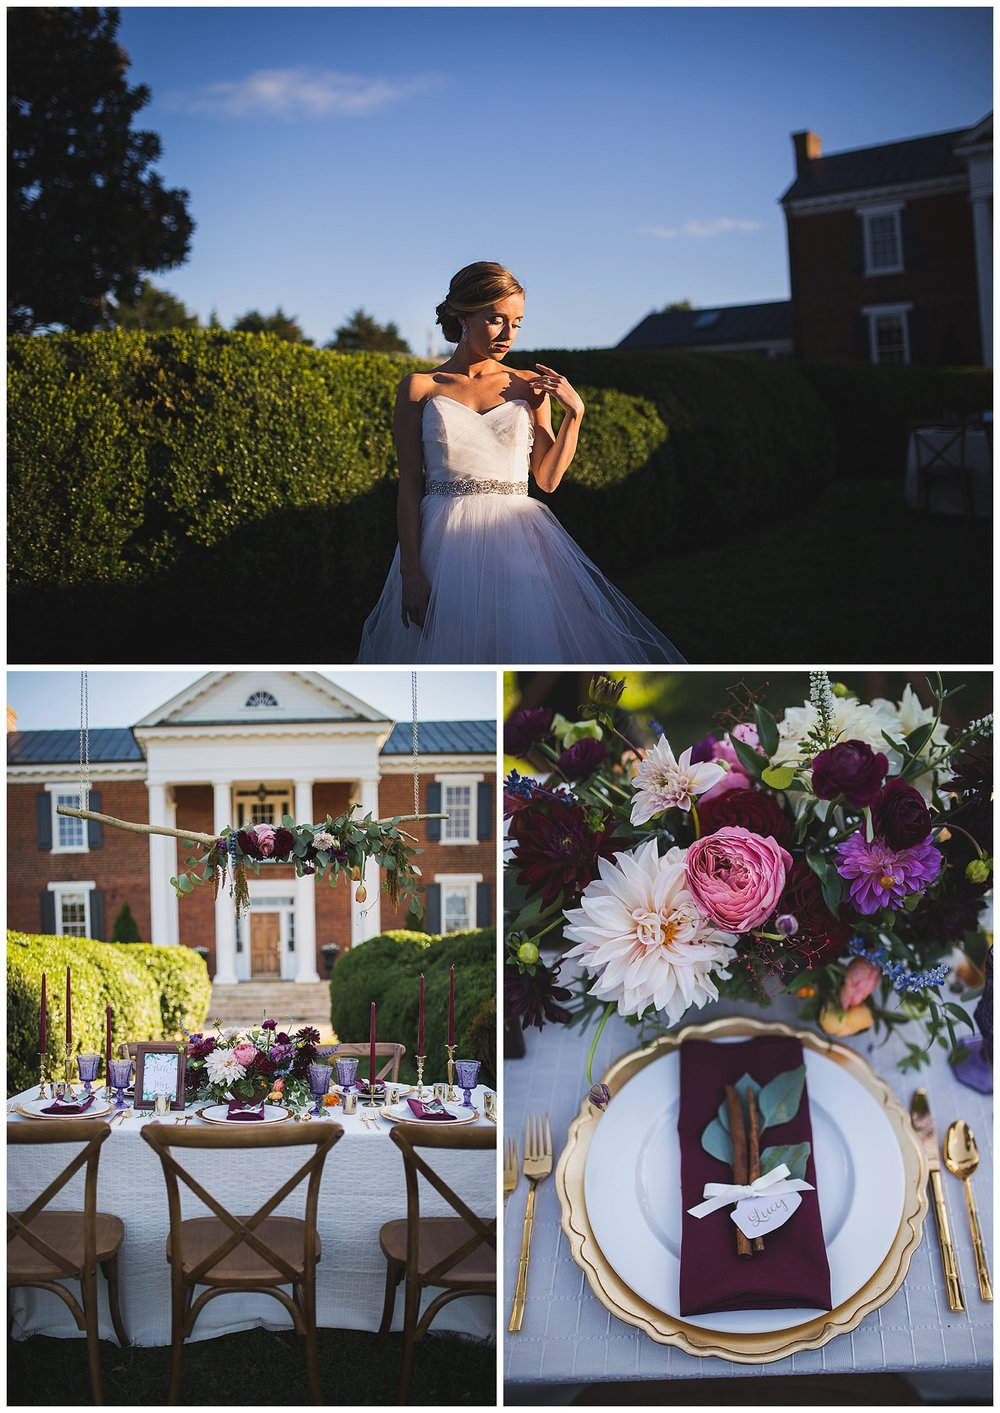 EmilyRogers-southwest-virginia-creative-wedding-photographer_0187.jpg